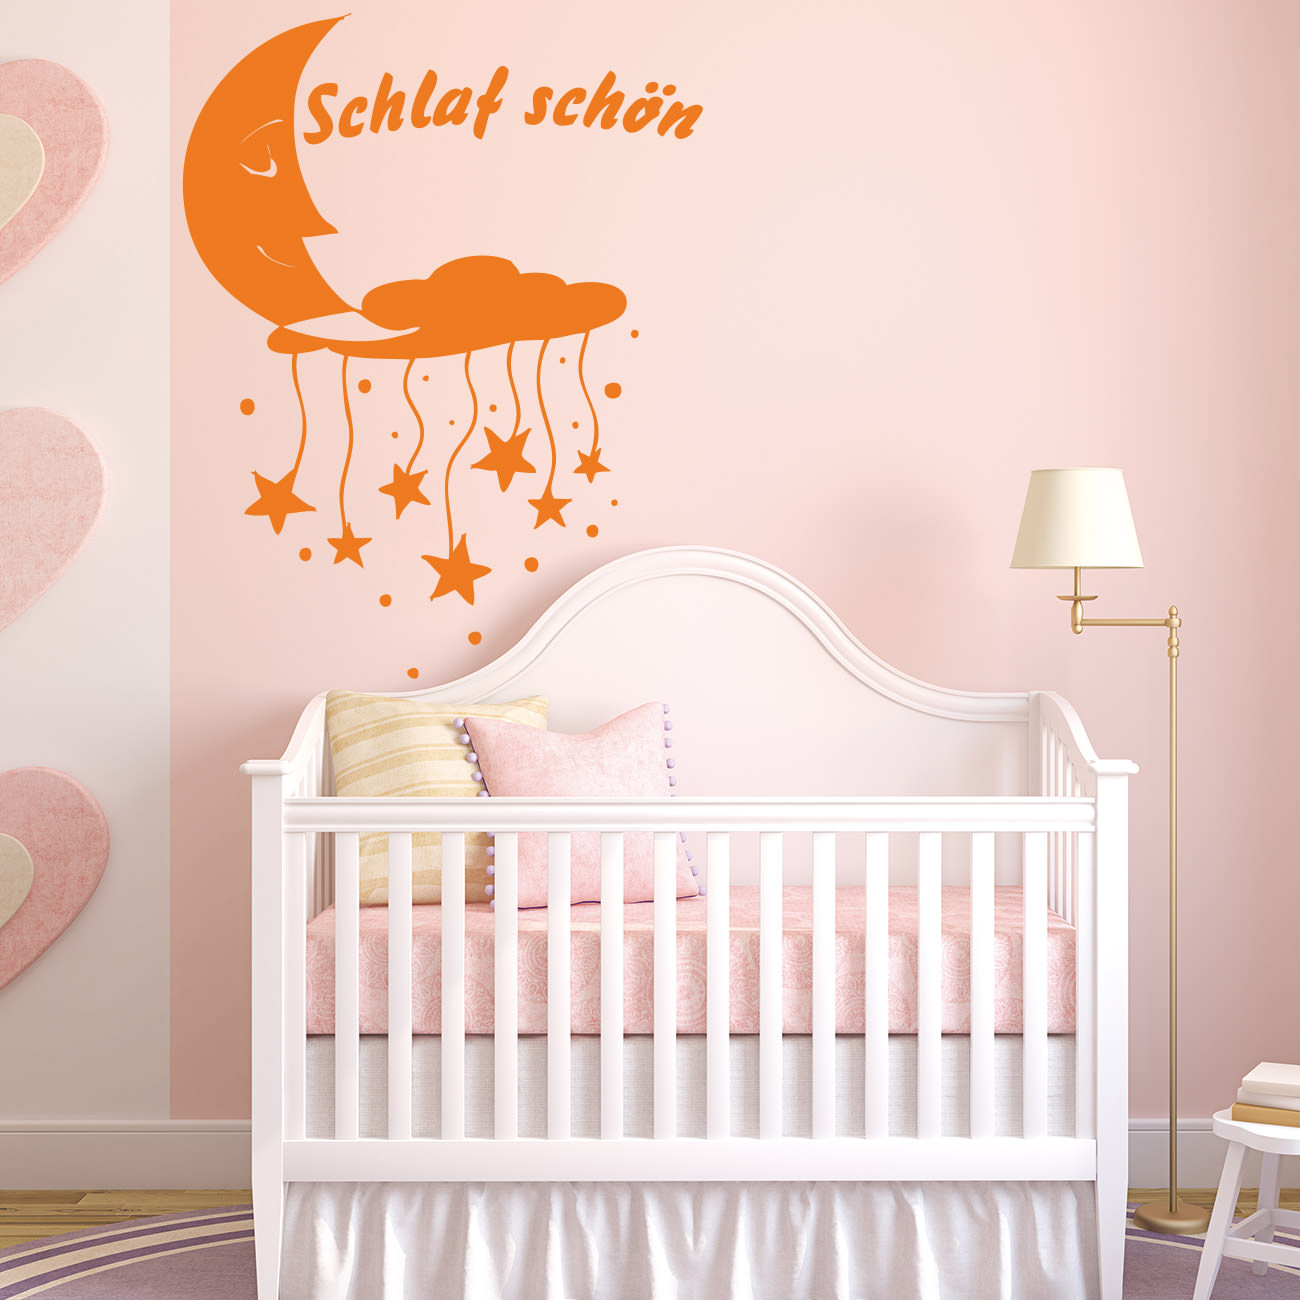 schlaf sch n f r wohnzimmer kinderzimmer wandtattoo. Black Bedroom Furniture Sets. Home Design Ideas